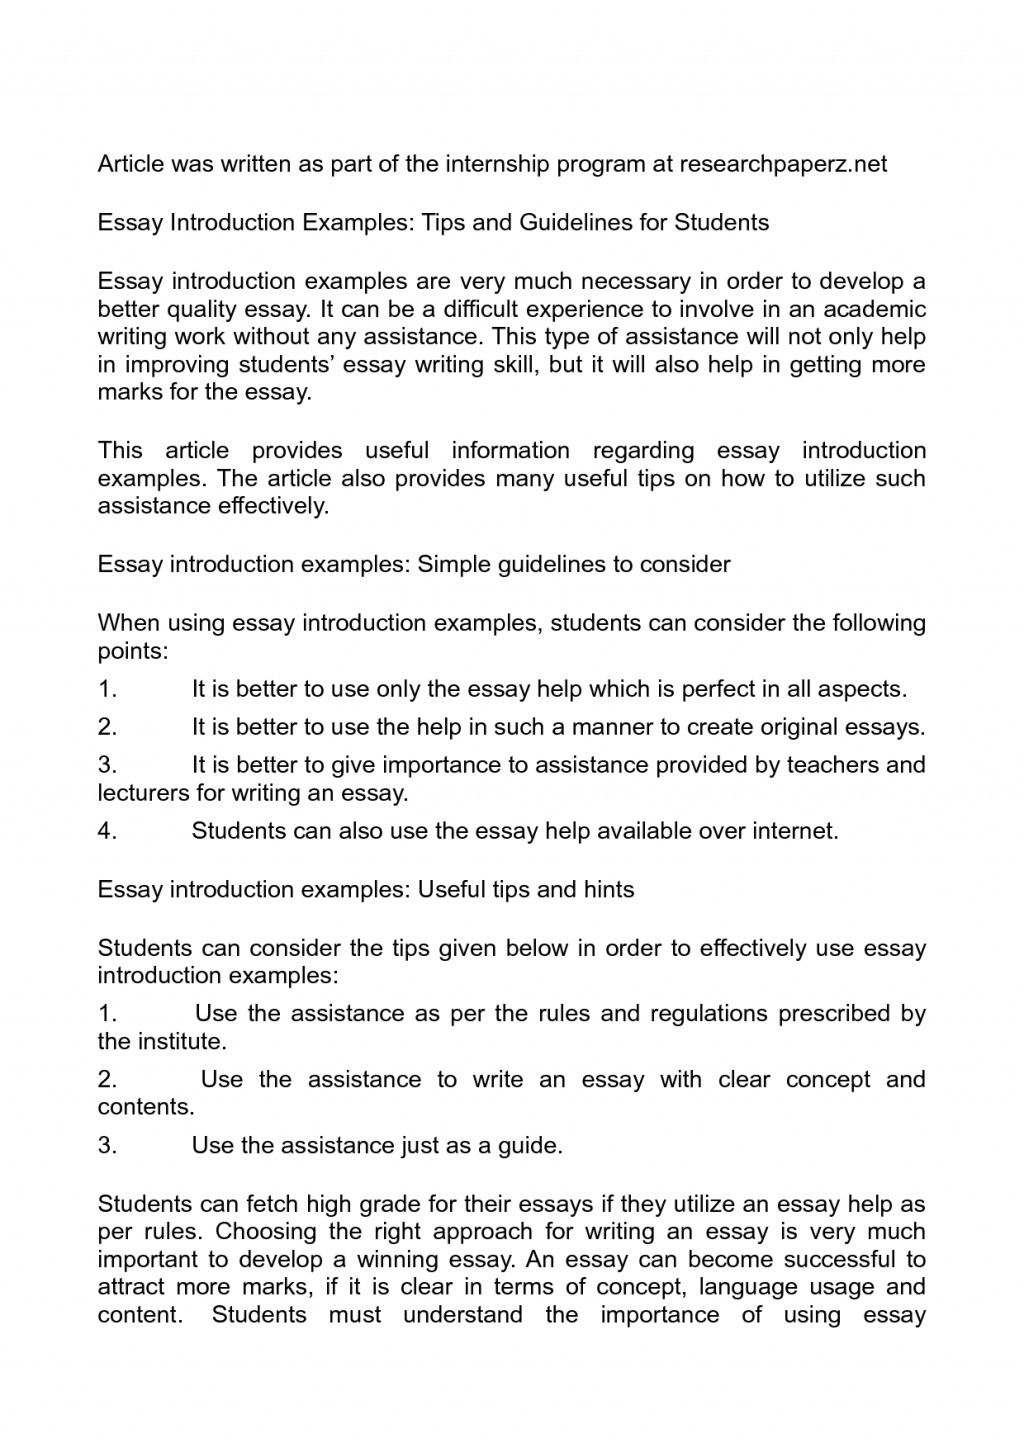 016 Concept Essays Eyx5t6okob Stunning Essay Examples Topic Paper Large